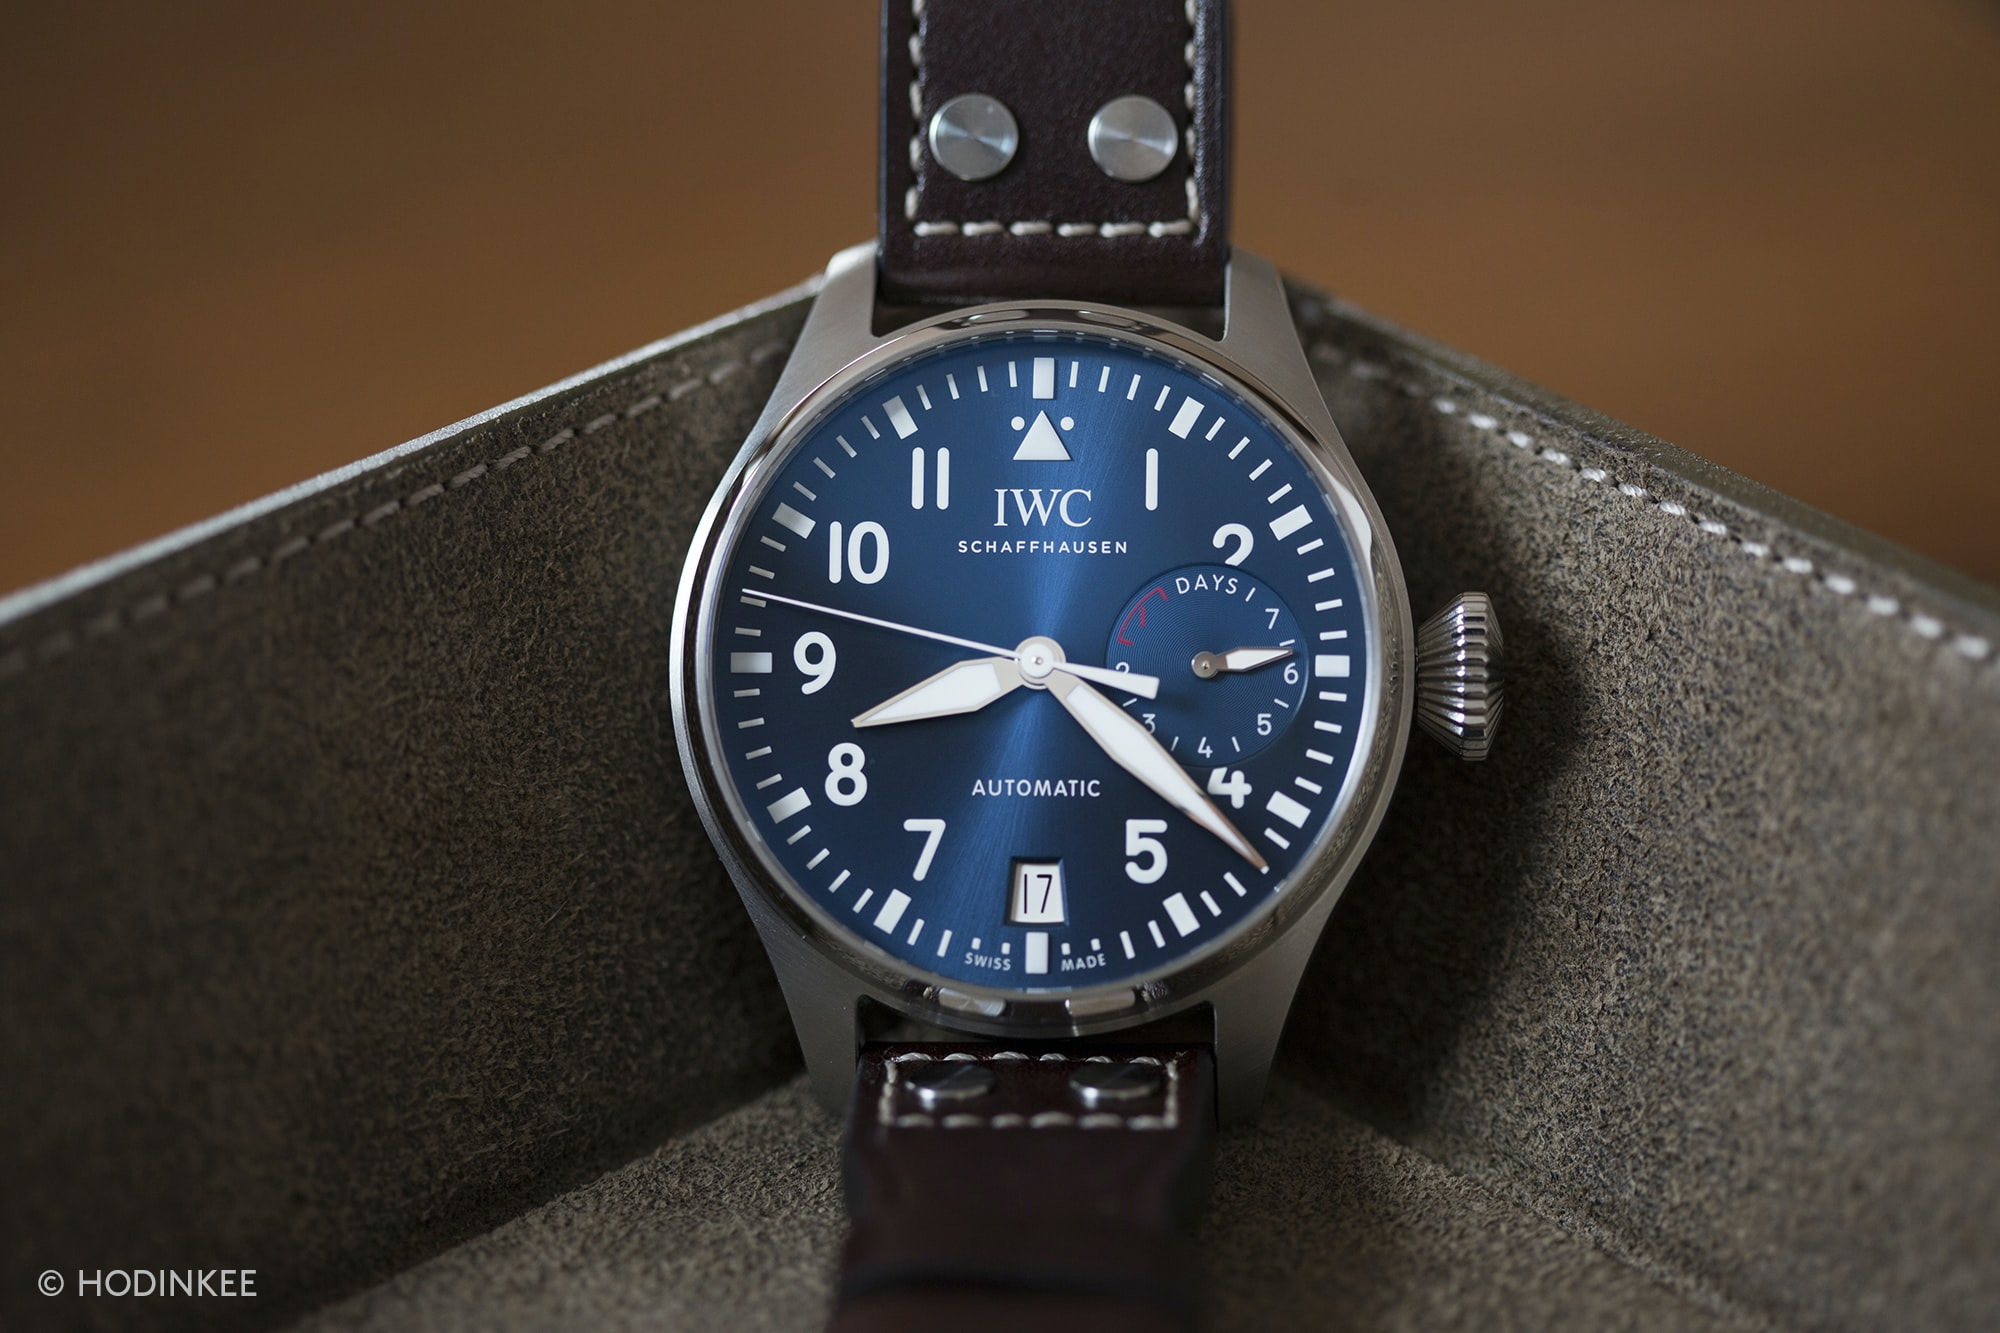 The HODINKEE 2016 Video Year In Review The HODINKEE 2016 Video Year In Review 588A0015 copy 2